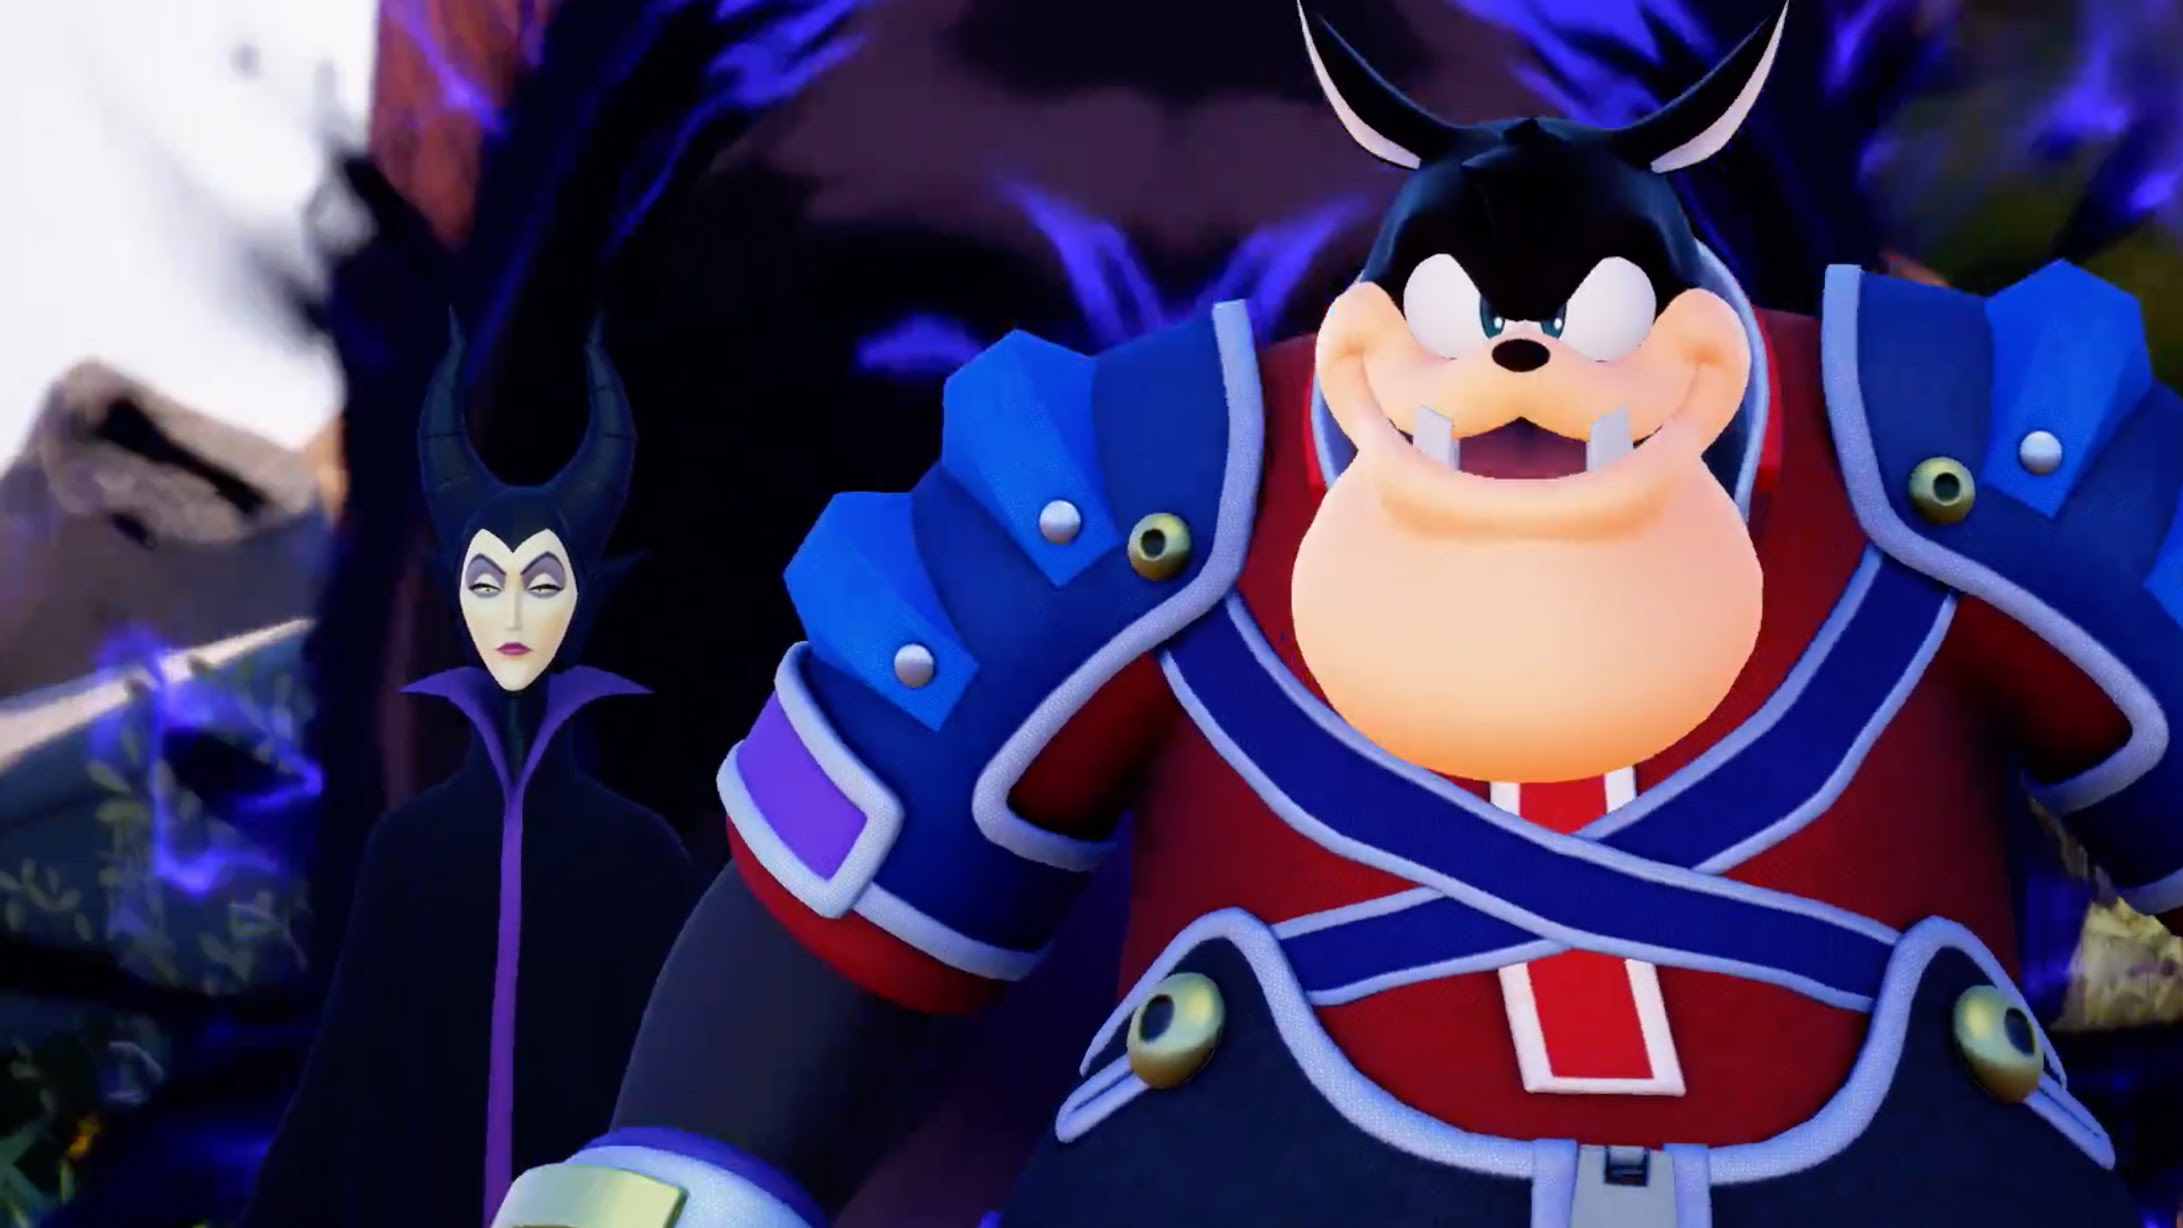 Watch this new Kingdom Hearts III trailer now because God only knows when we'll get the game screenshot